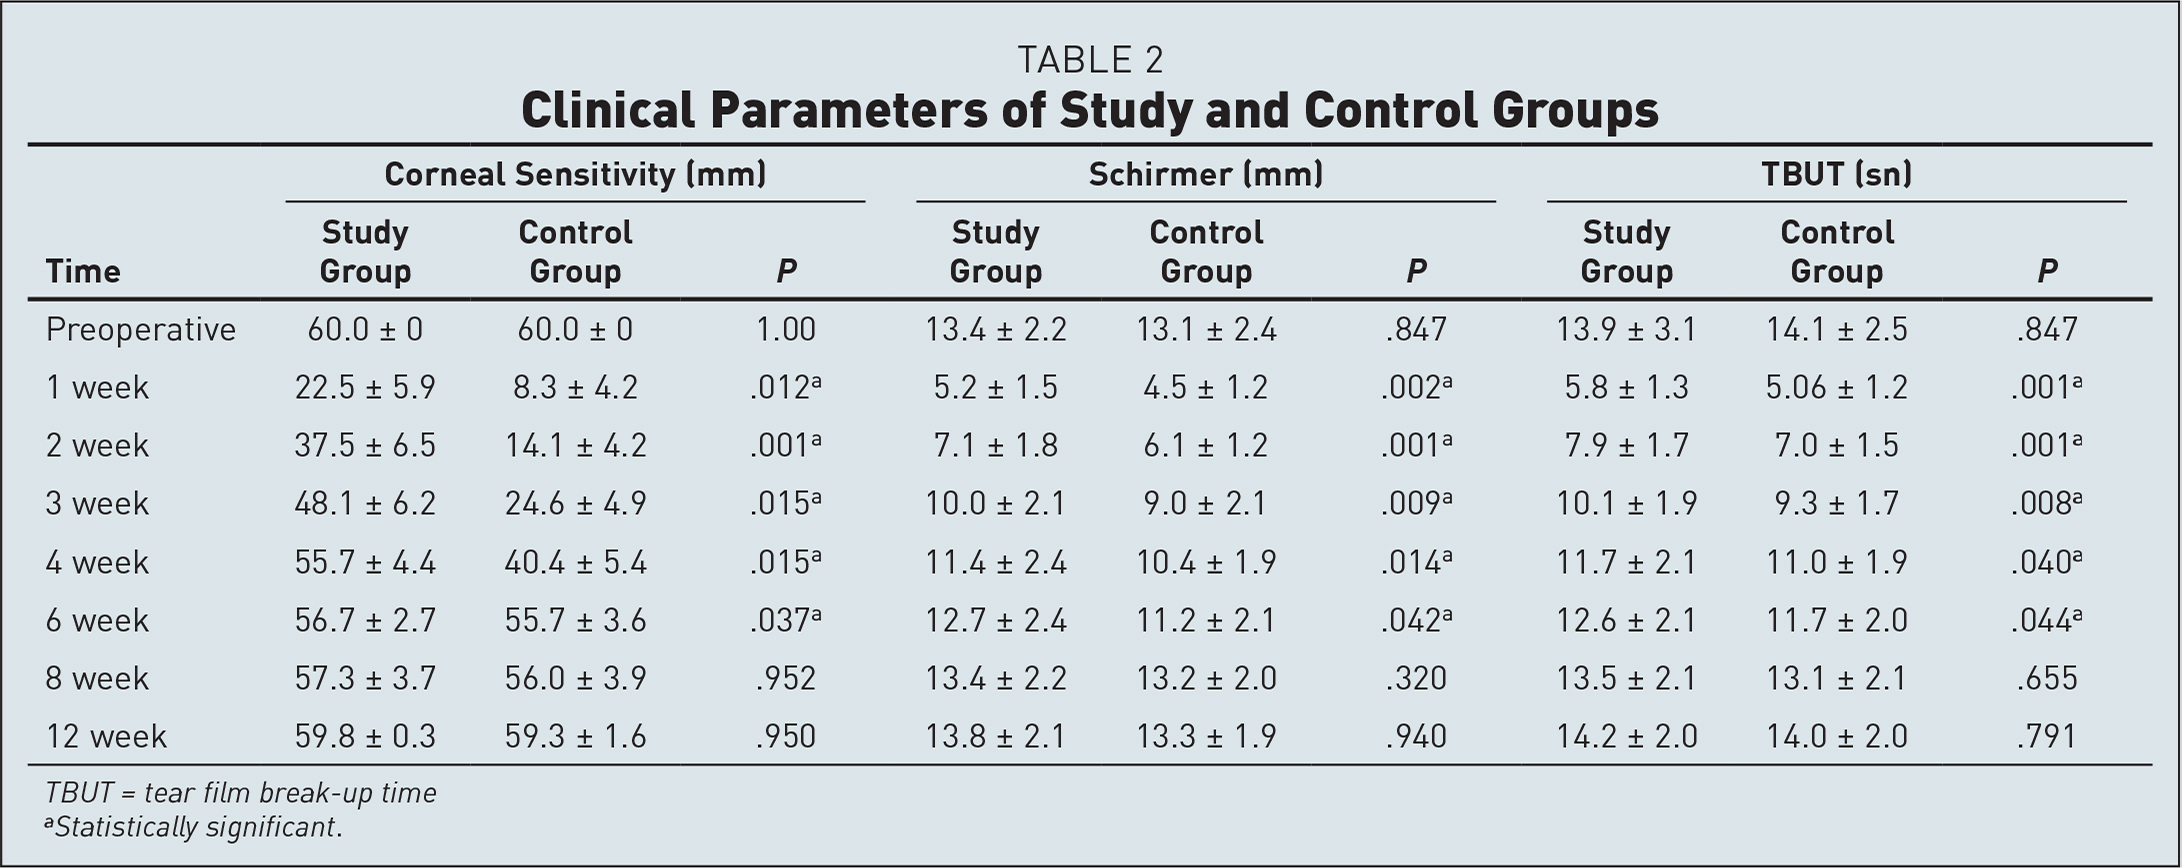 Clinical Parameters of Study and Control Groups